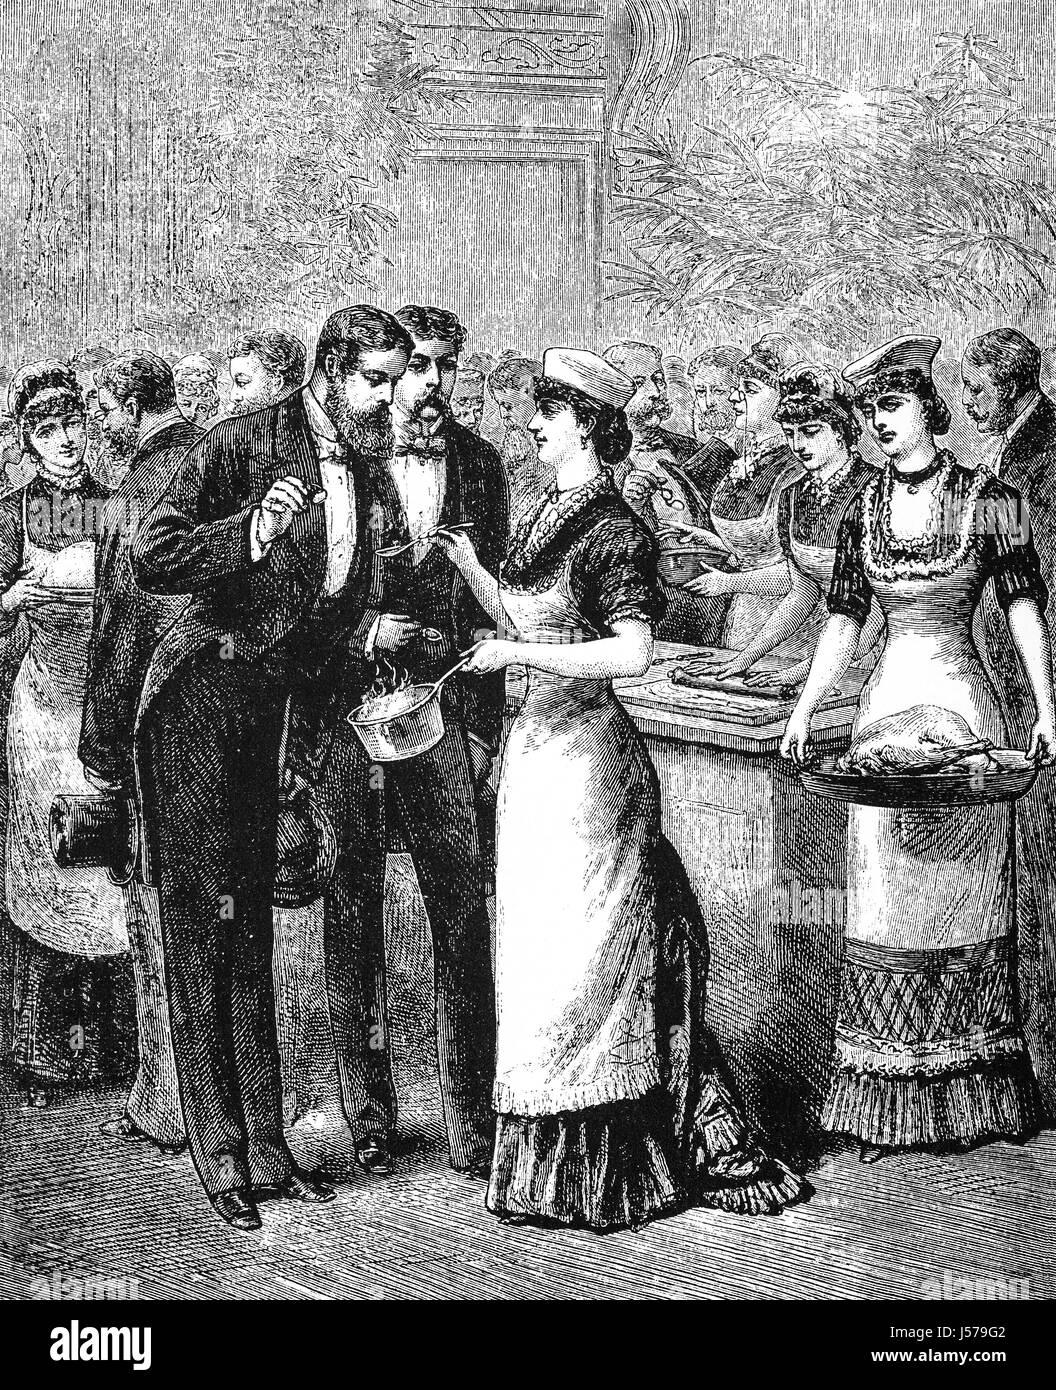 1879: Guests sampling food at the American School of Cookery, City of Philadelphia, Pennsylvania, United States - Stock Image